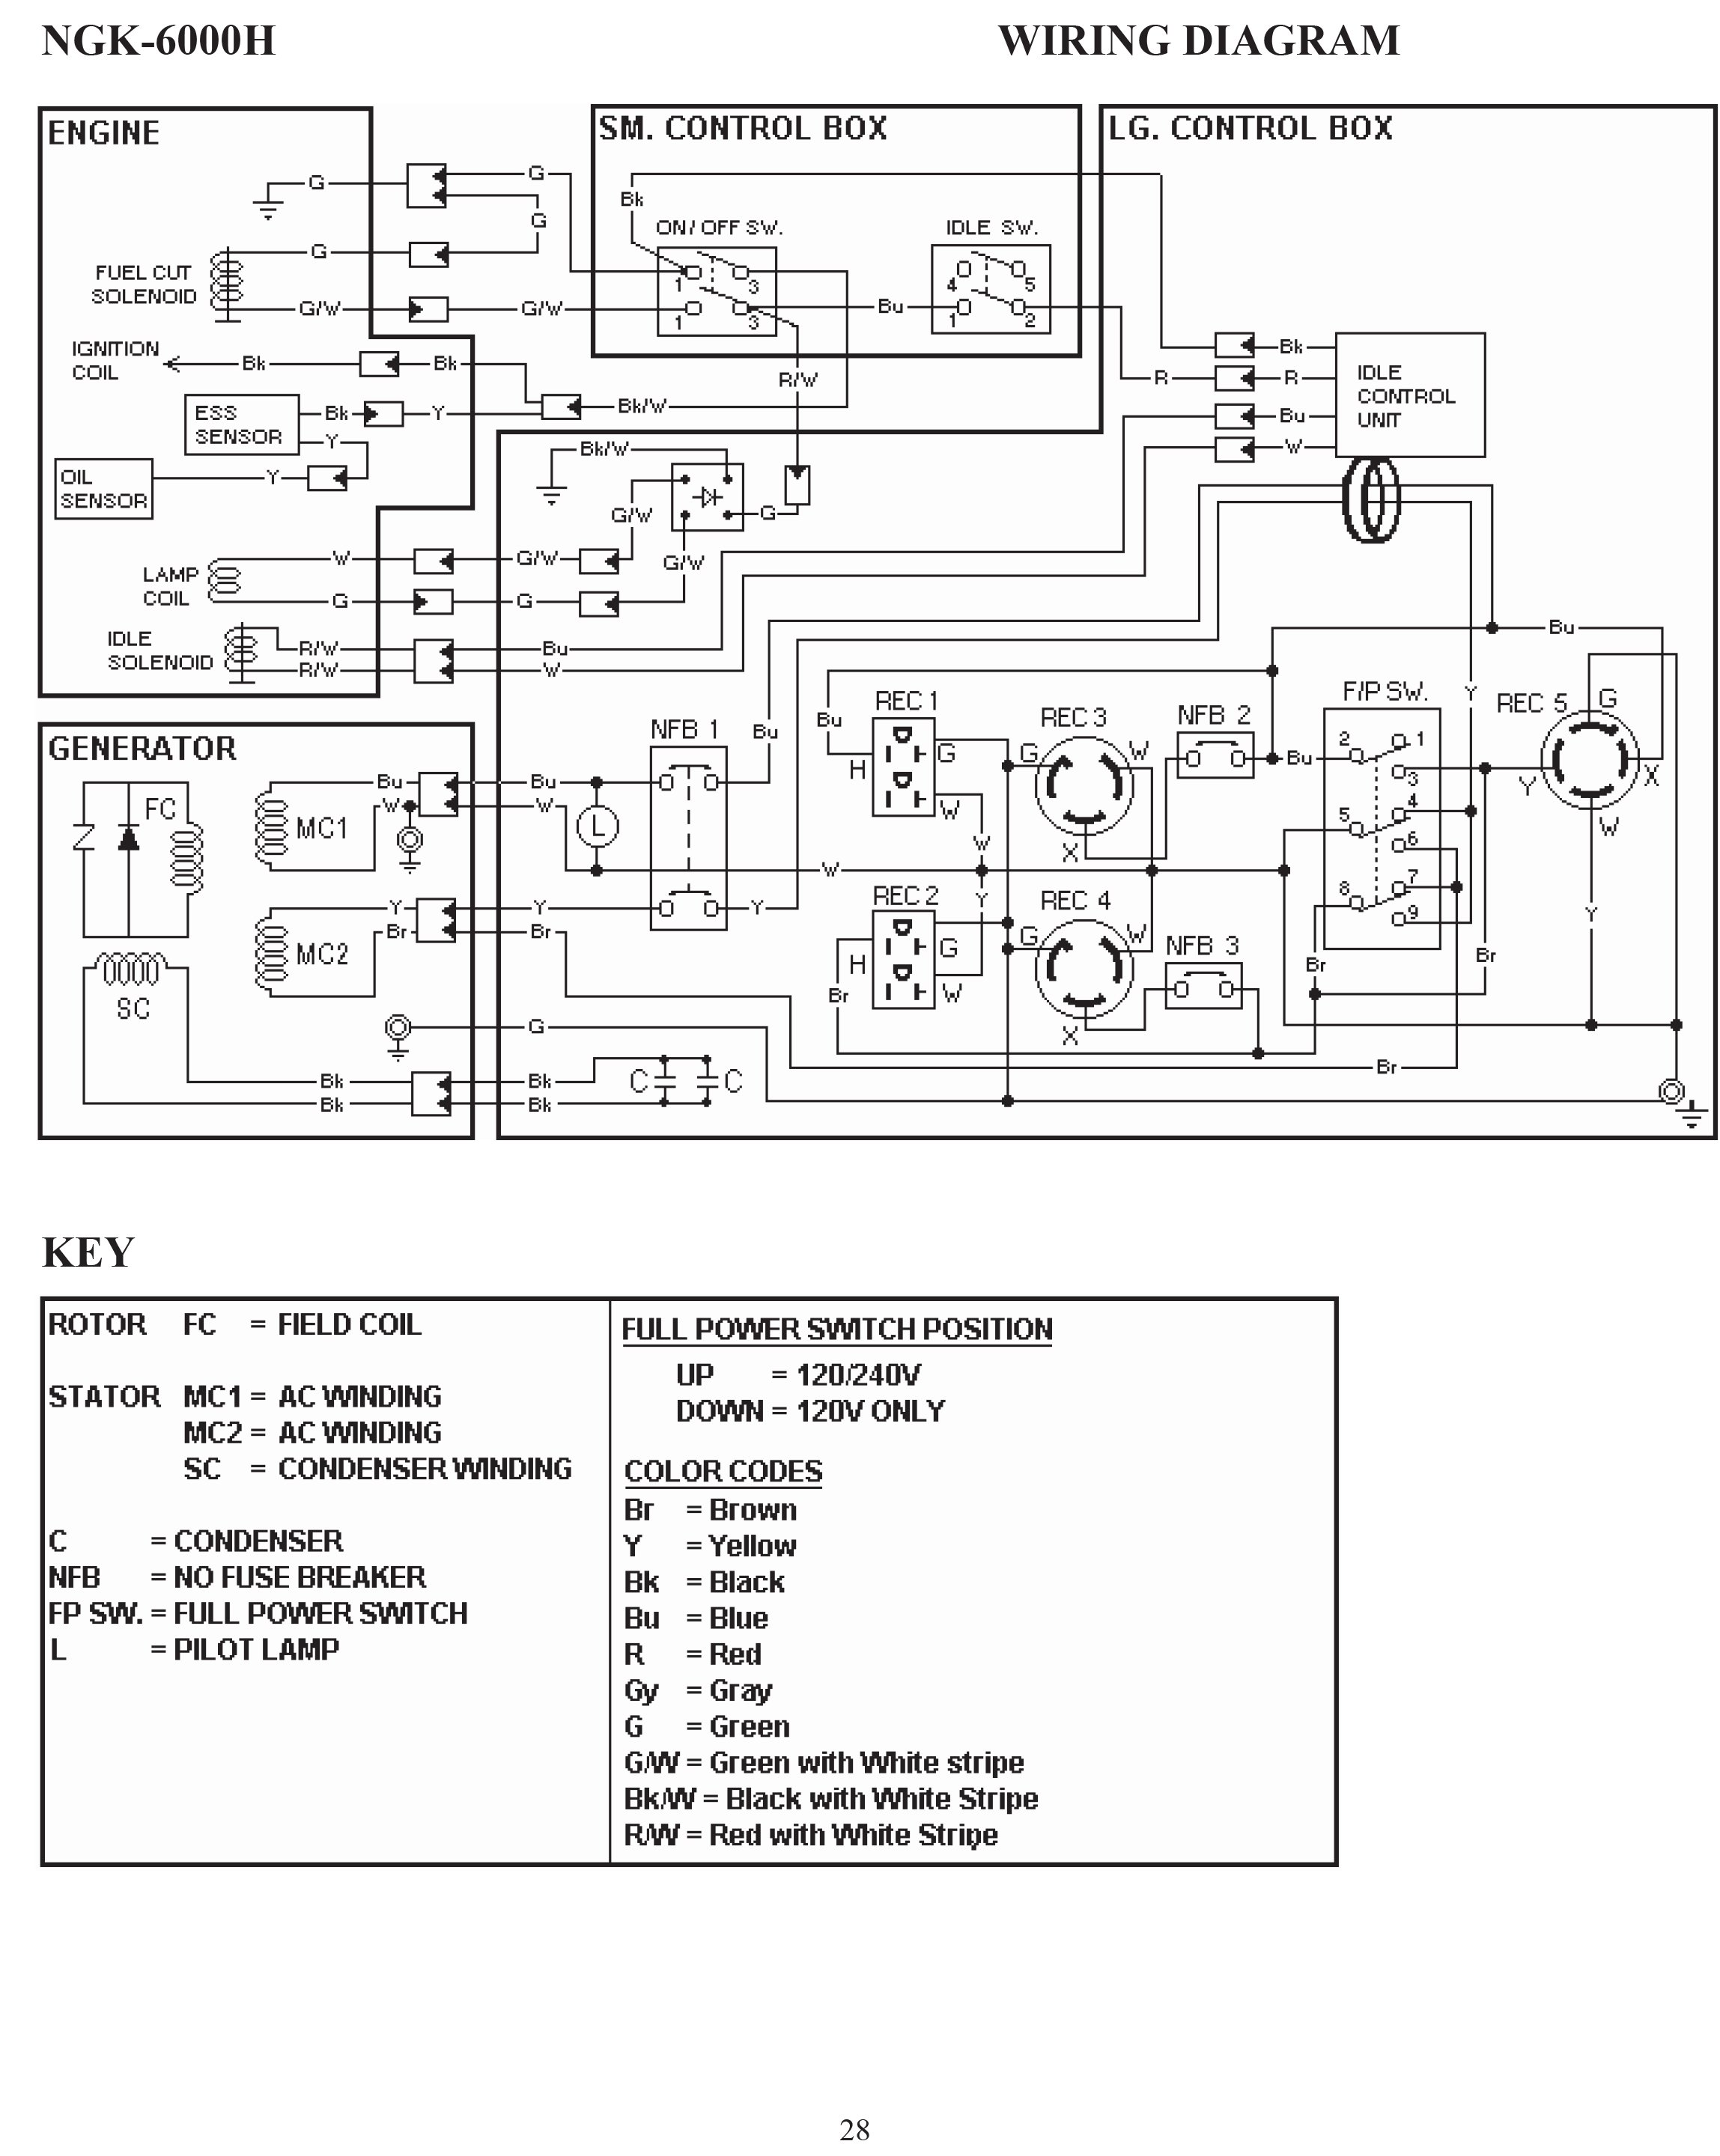 [DIAGRAM_38IU]  De Walt Dg6000 Generator Wiring Diagram. dewalt dg6000 parts list and  diagram type 1. dewalt dg6000 parts list dewalt dg6000 repair parts. dewalt  dg6000 6000w gas generator type 1 parts and. oem | Dewalt Generator Wiring Diagram |  | A.2002-acura-tl-radio.info. All Rights Reserved.